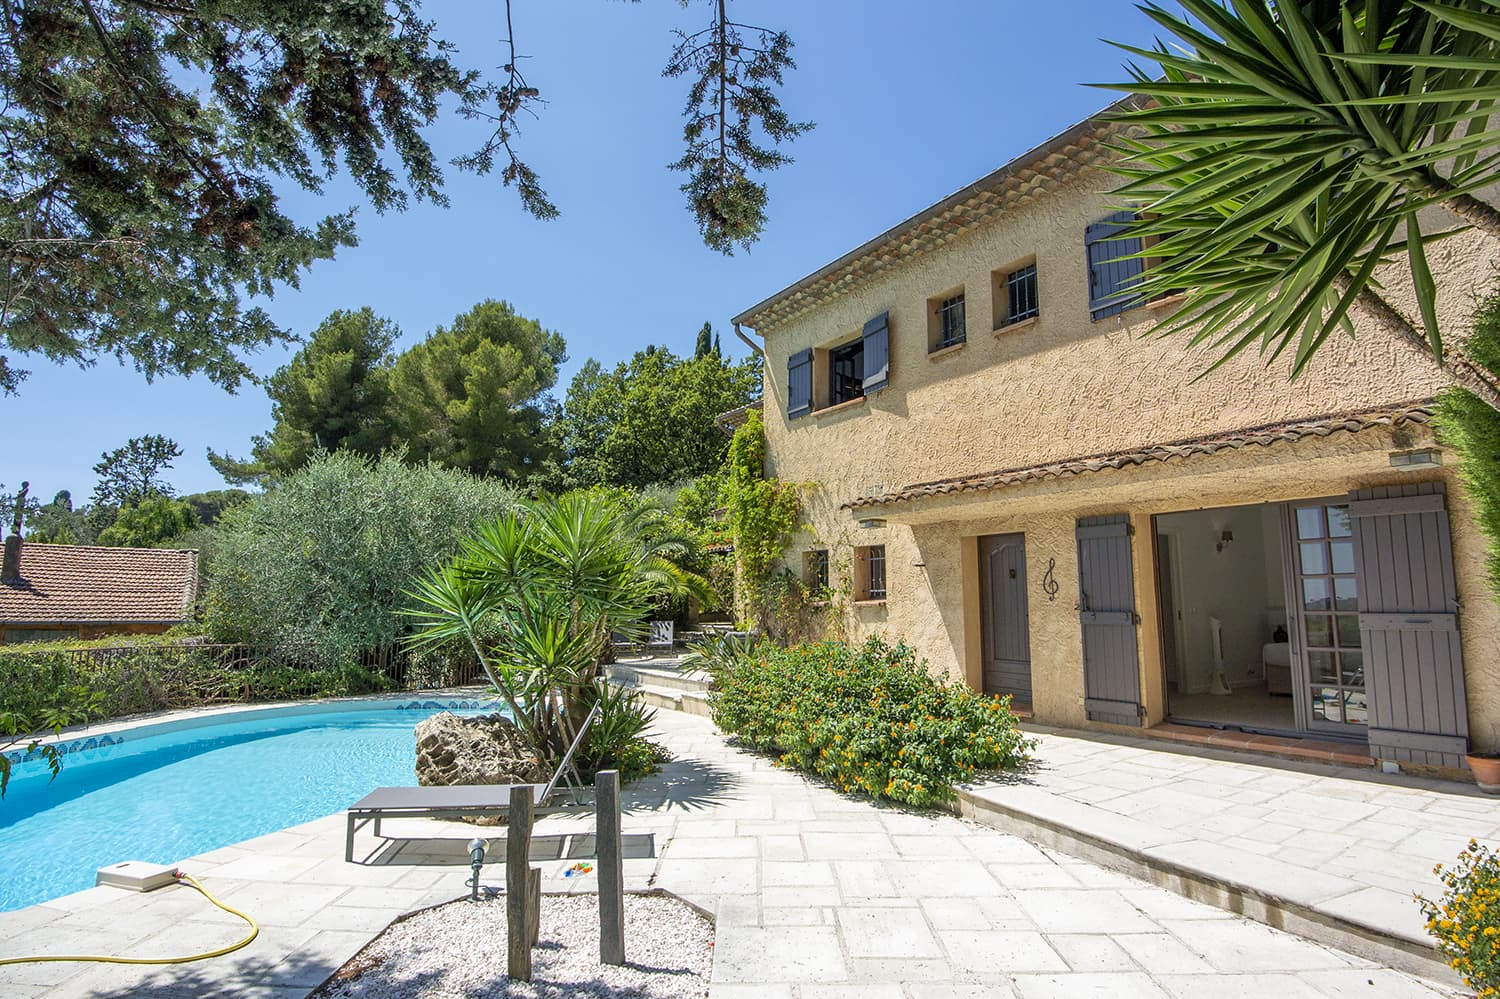 Holiday home in Mougins, Provence-Alpes-Côte d'Azur